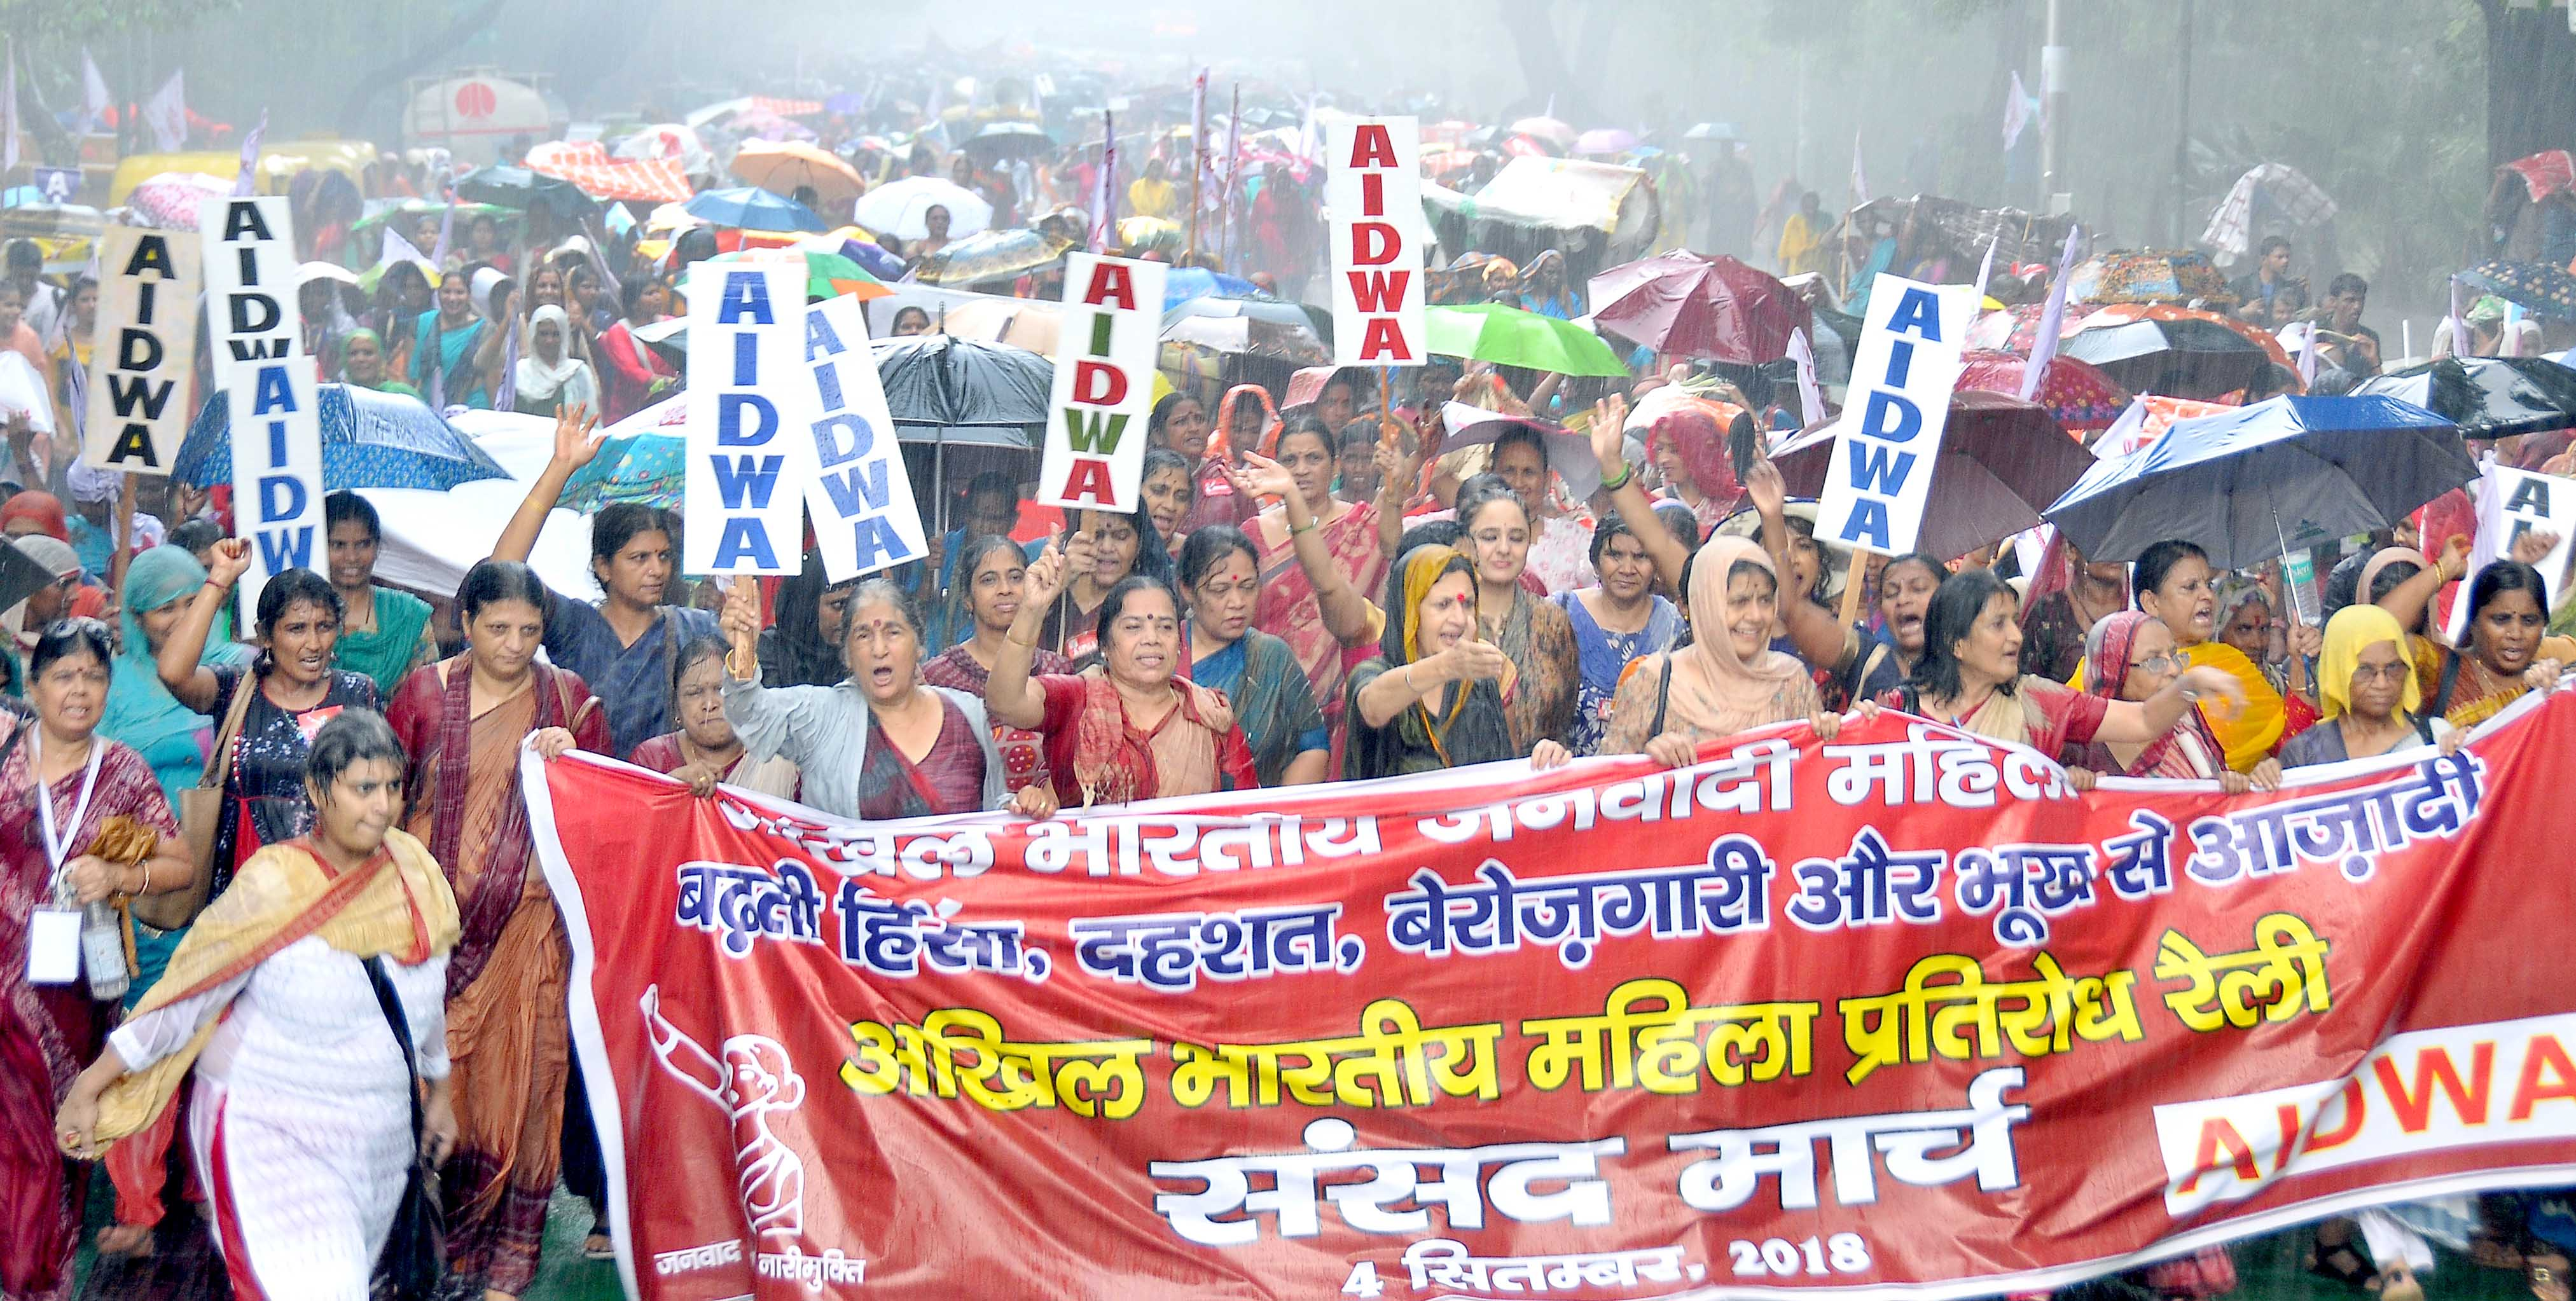 Thousands Of Women Under AIDWA  Banner Vow To Fight Violence, Fear, Hunger And Unemployment Aggravated By BJP's Modi Regime